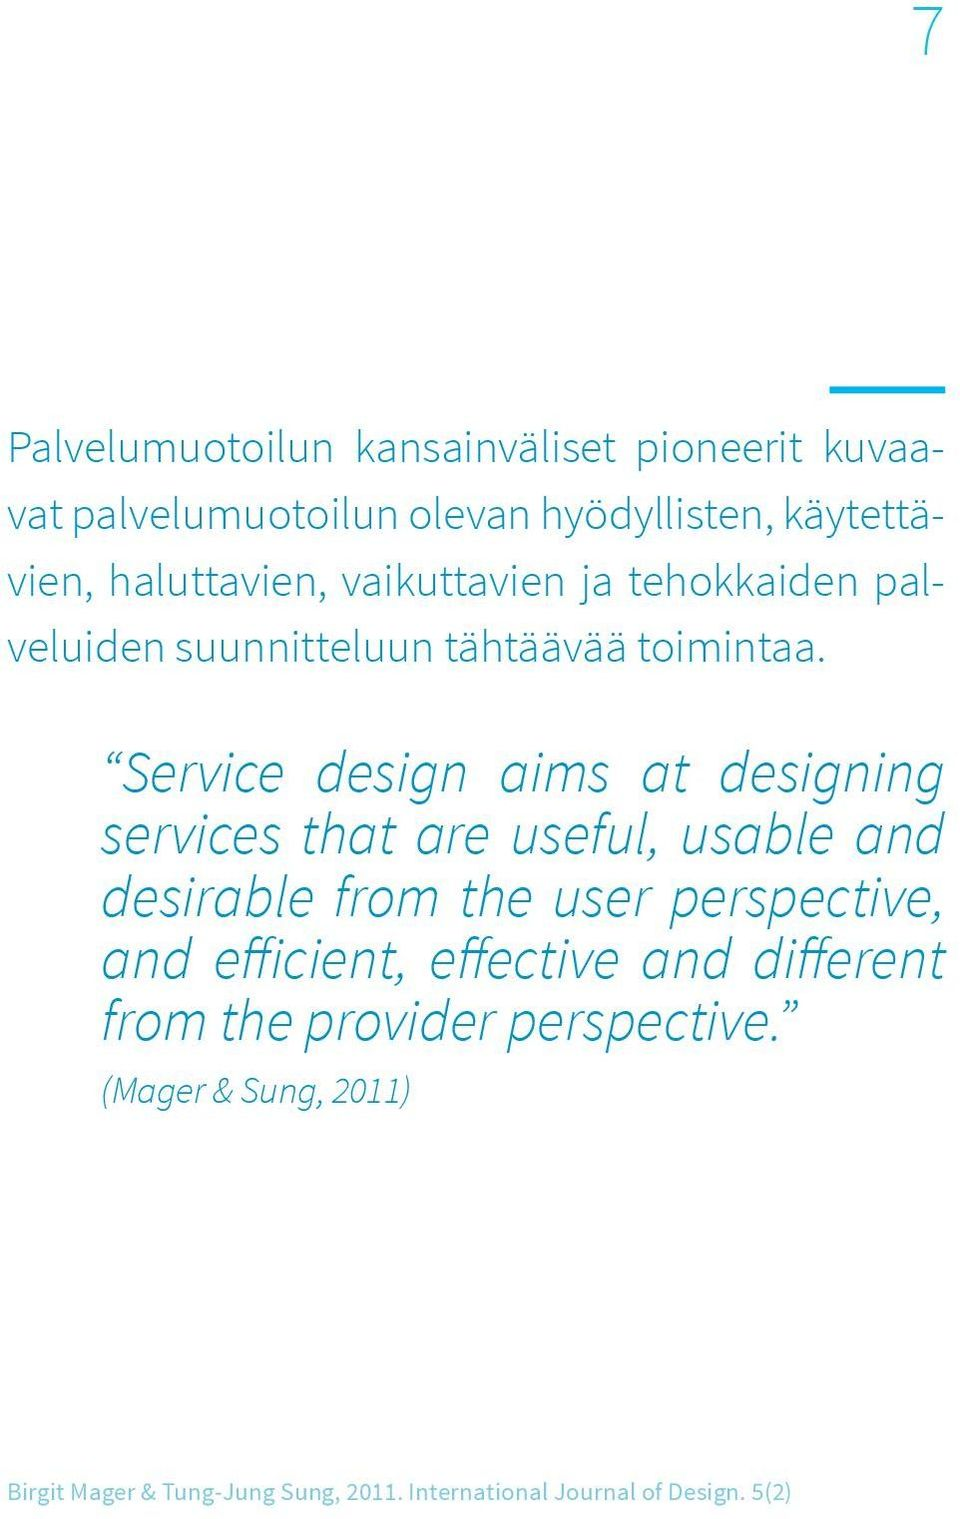 Service design aims at designing services that are useful, usable and desirable from the user perspective, and